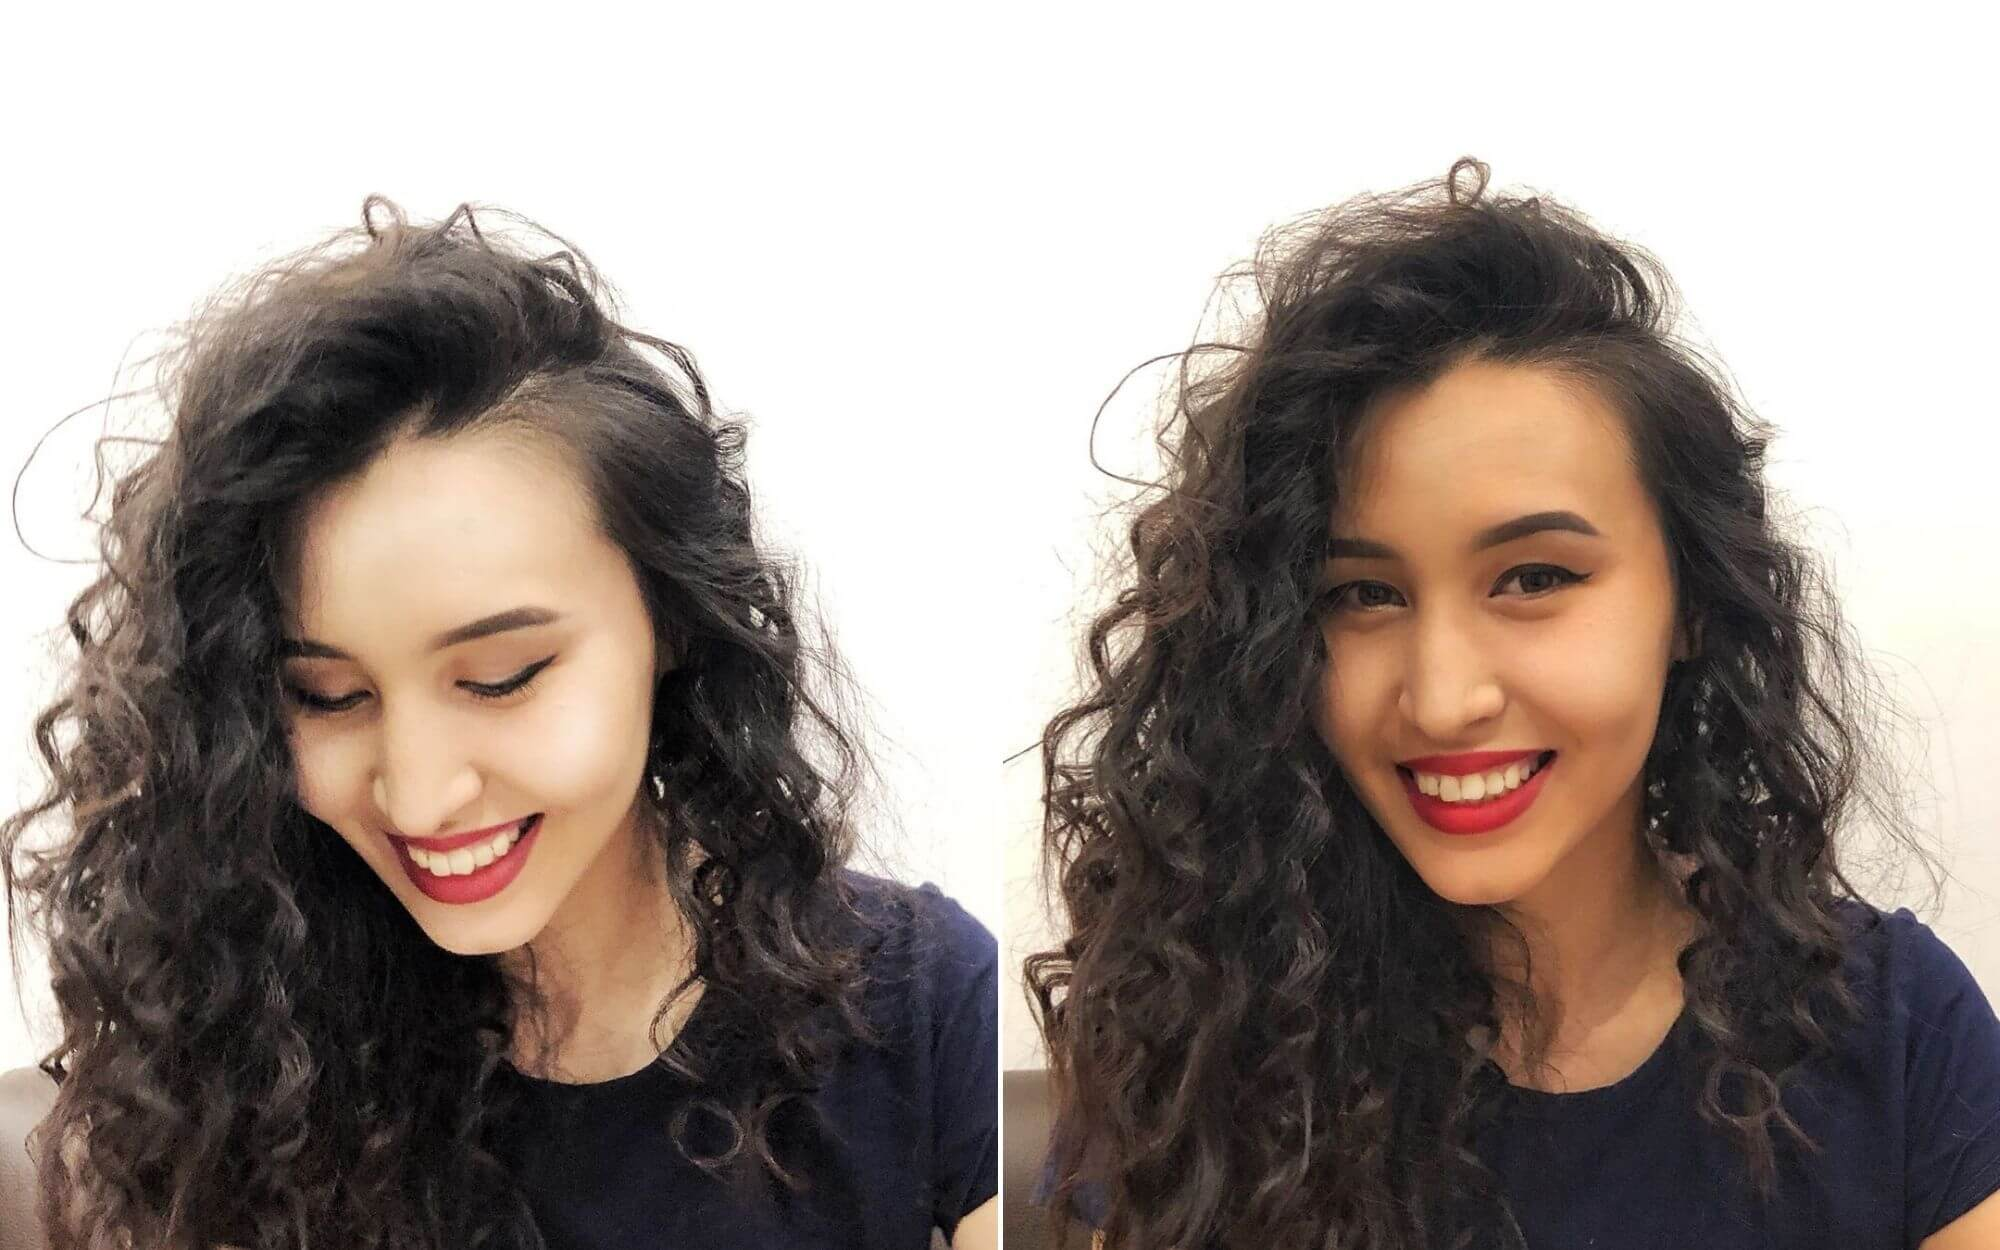 Cool Long Curled Haircut for Females